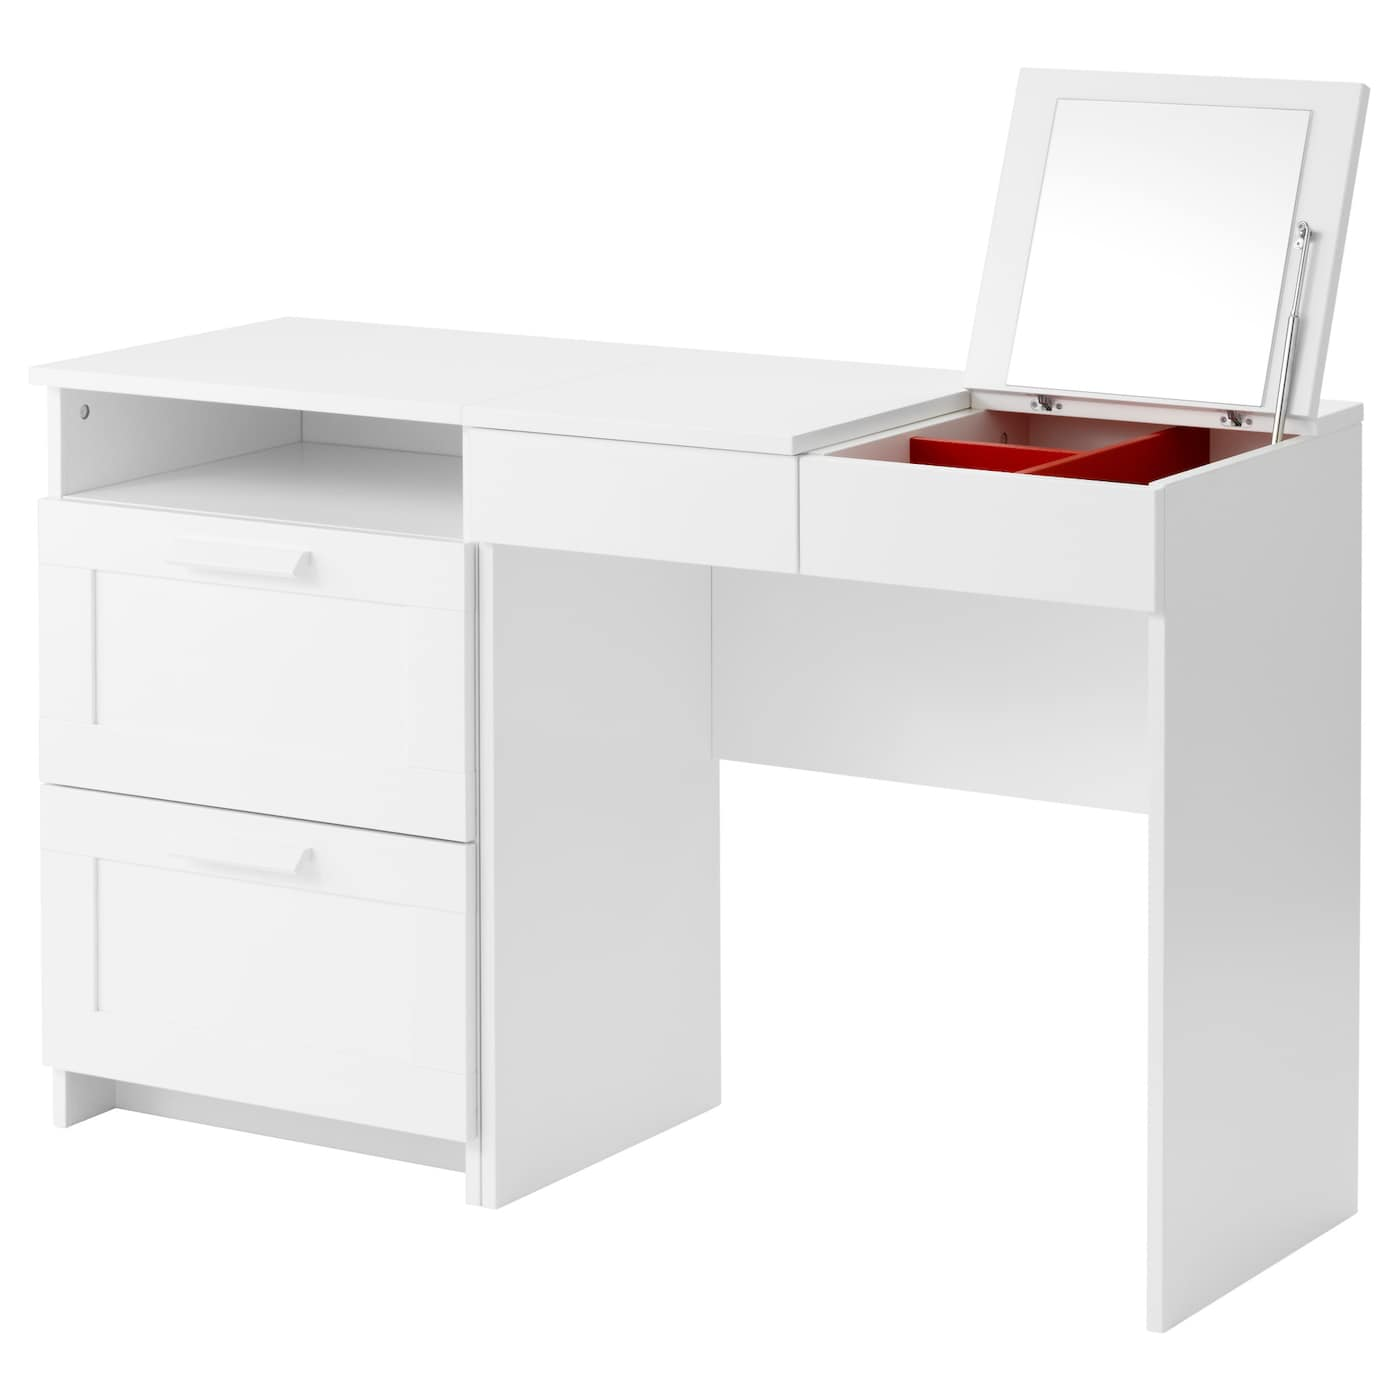 Brimnes dressing table chest of 2 drawers white ikea for Cheap dressing table with mirror